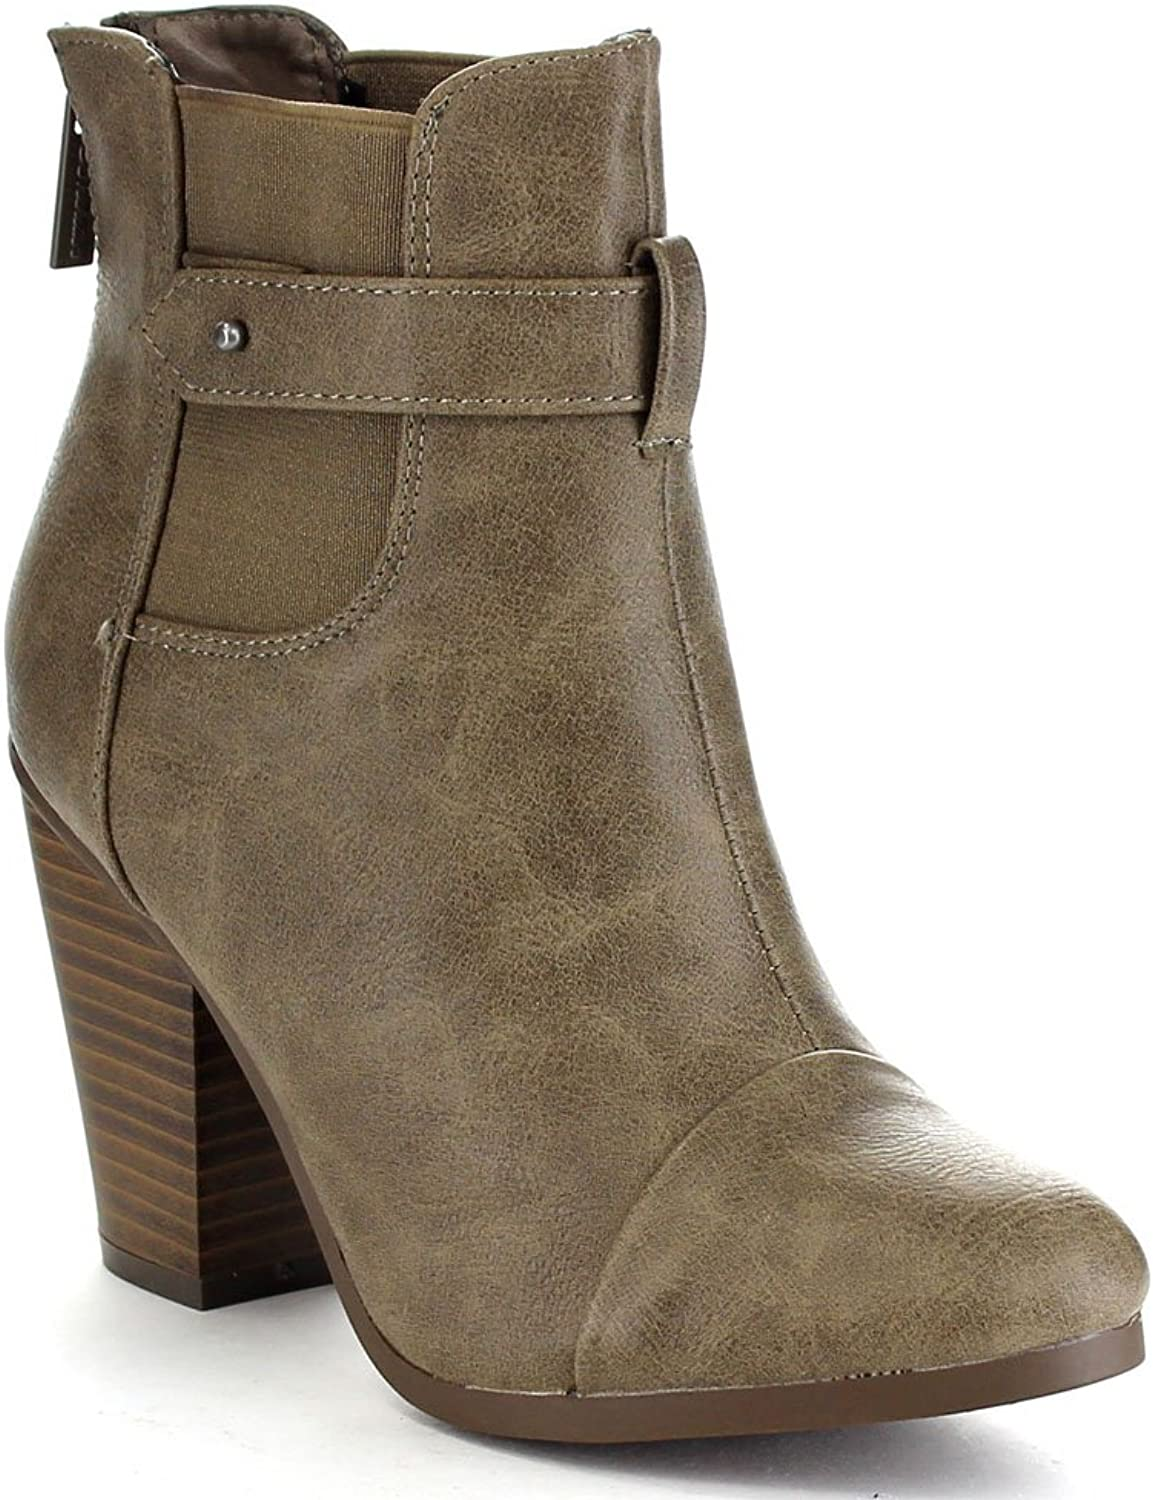 Breckelles GAIL-23 Women's Classical Chunky Stacked Heel Chelsea Ankle Booties